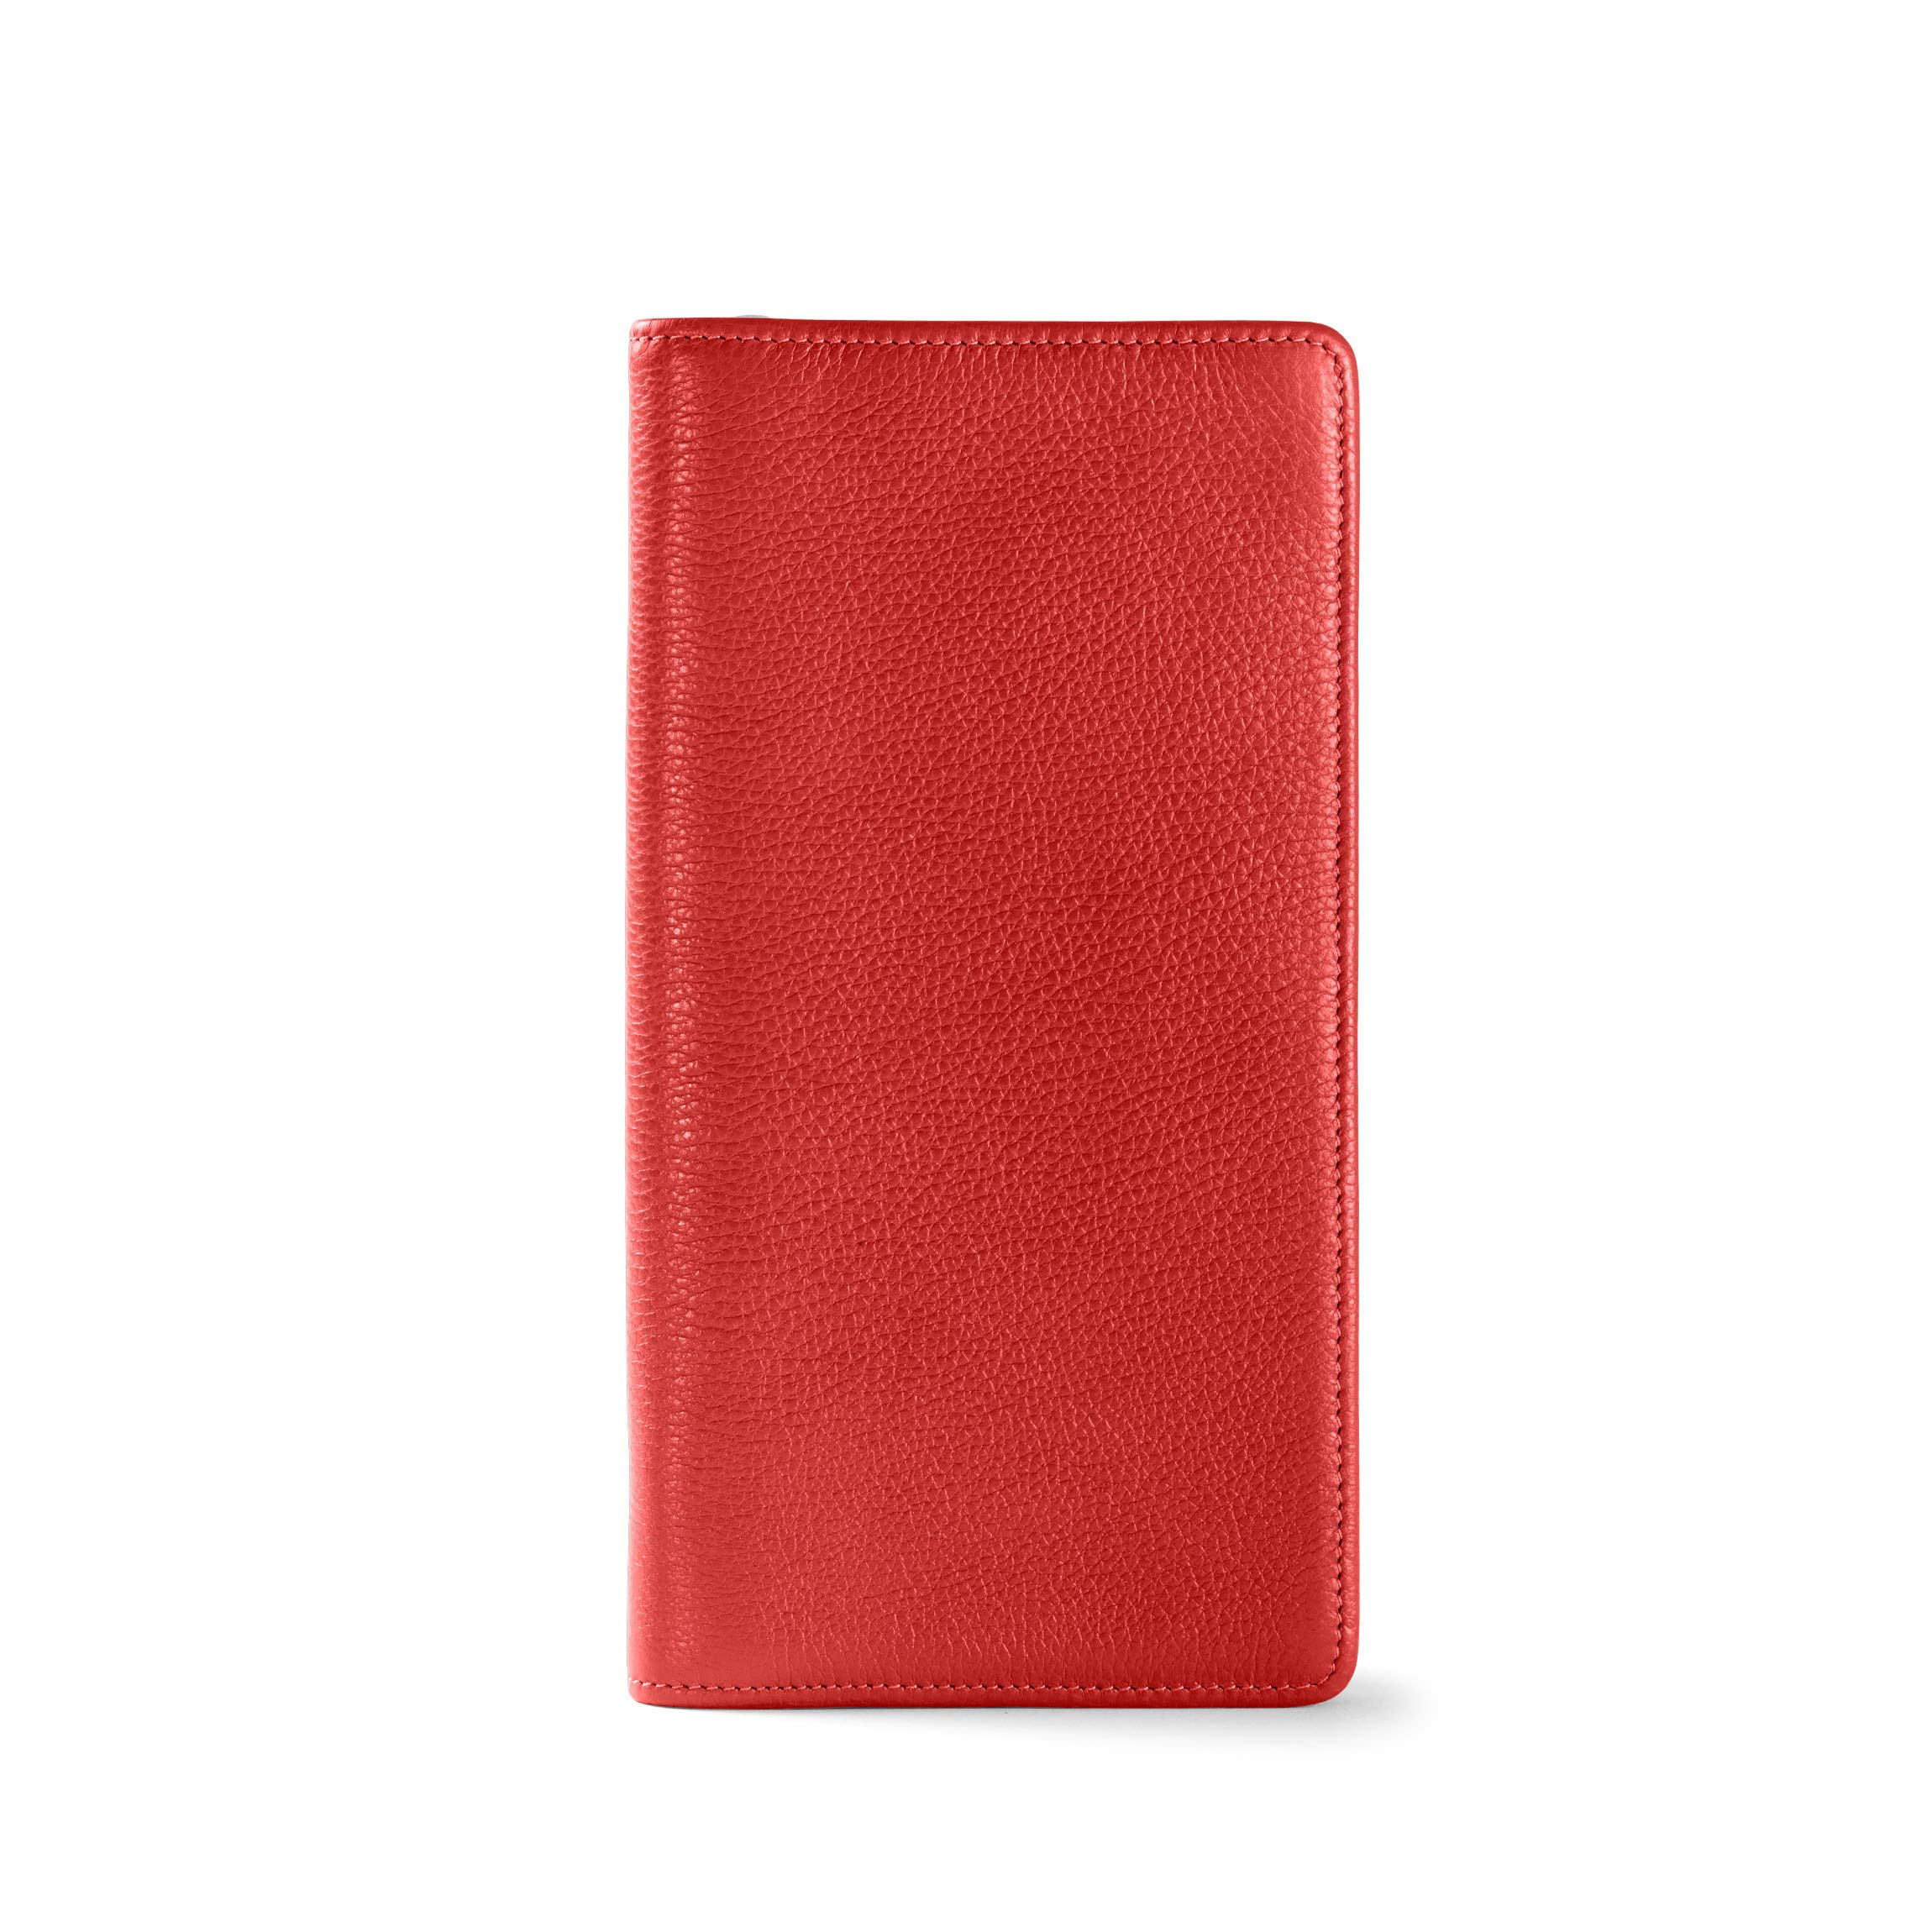 Zip Around Travel Wallet - Full Grain Leather Leather - RFID Scarlet (Red)